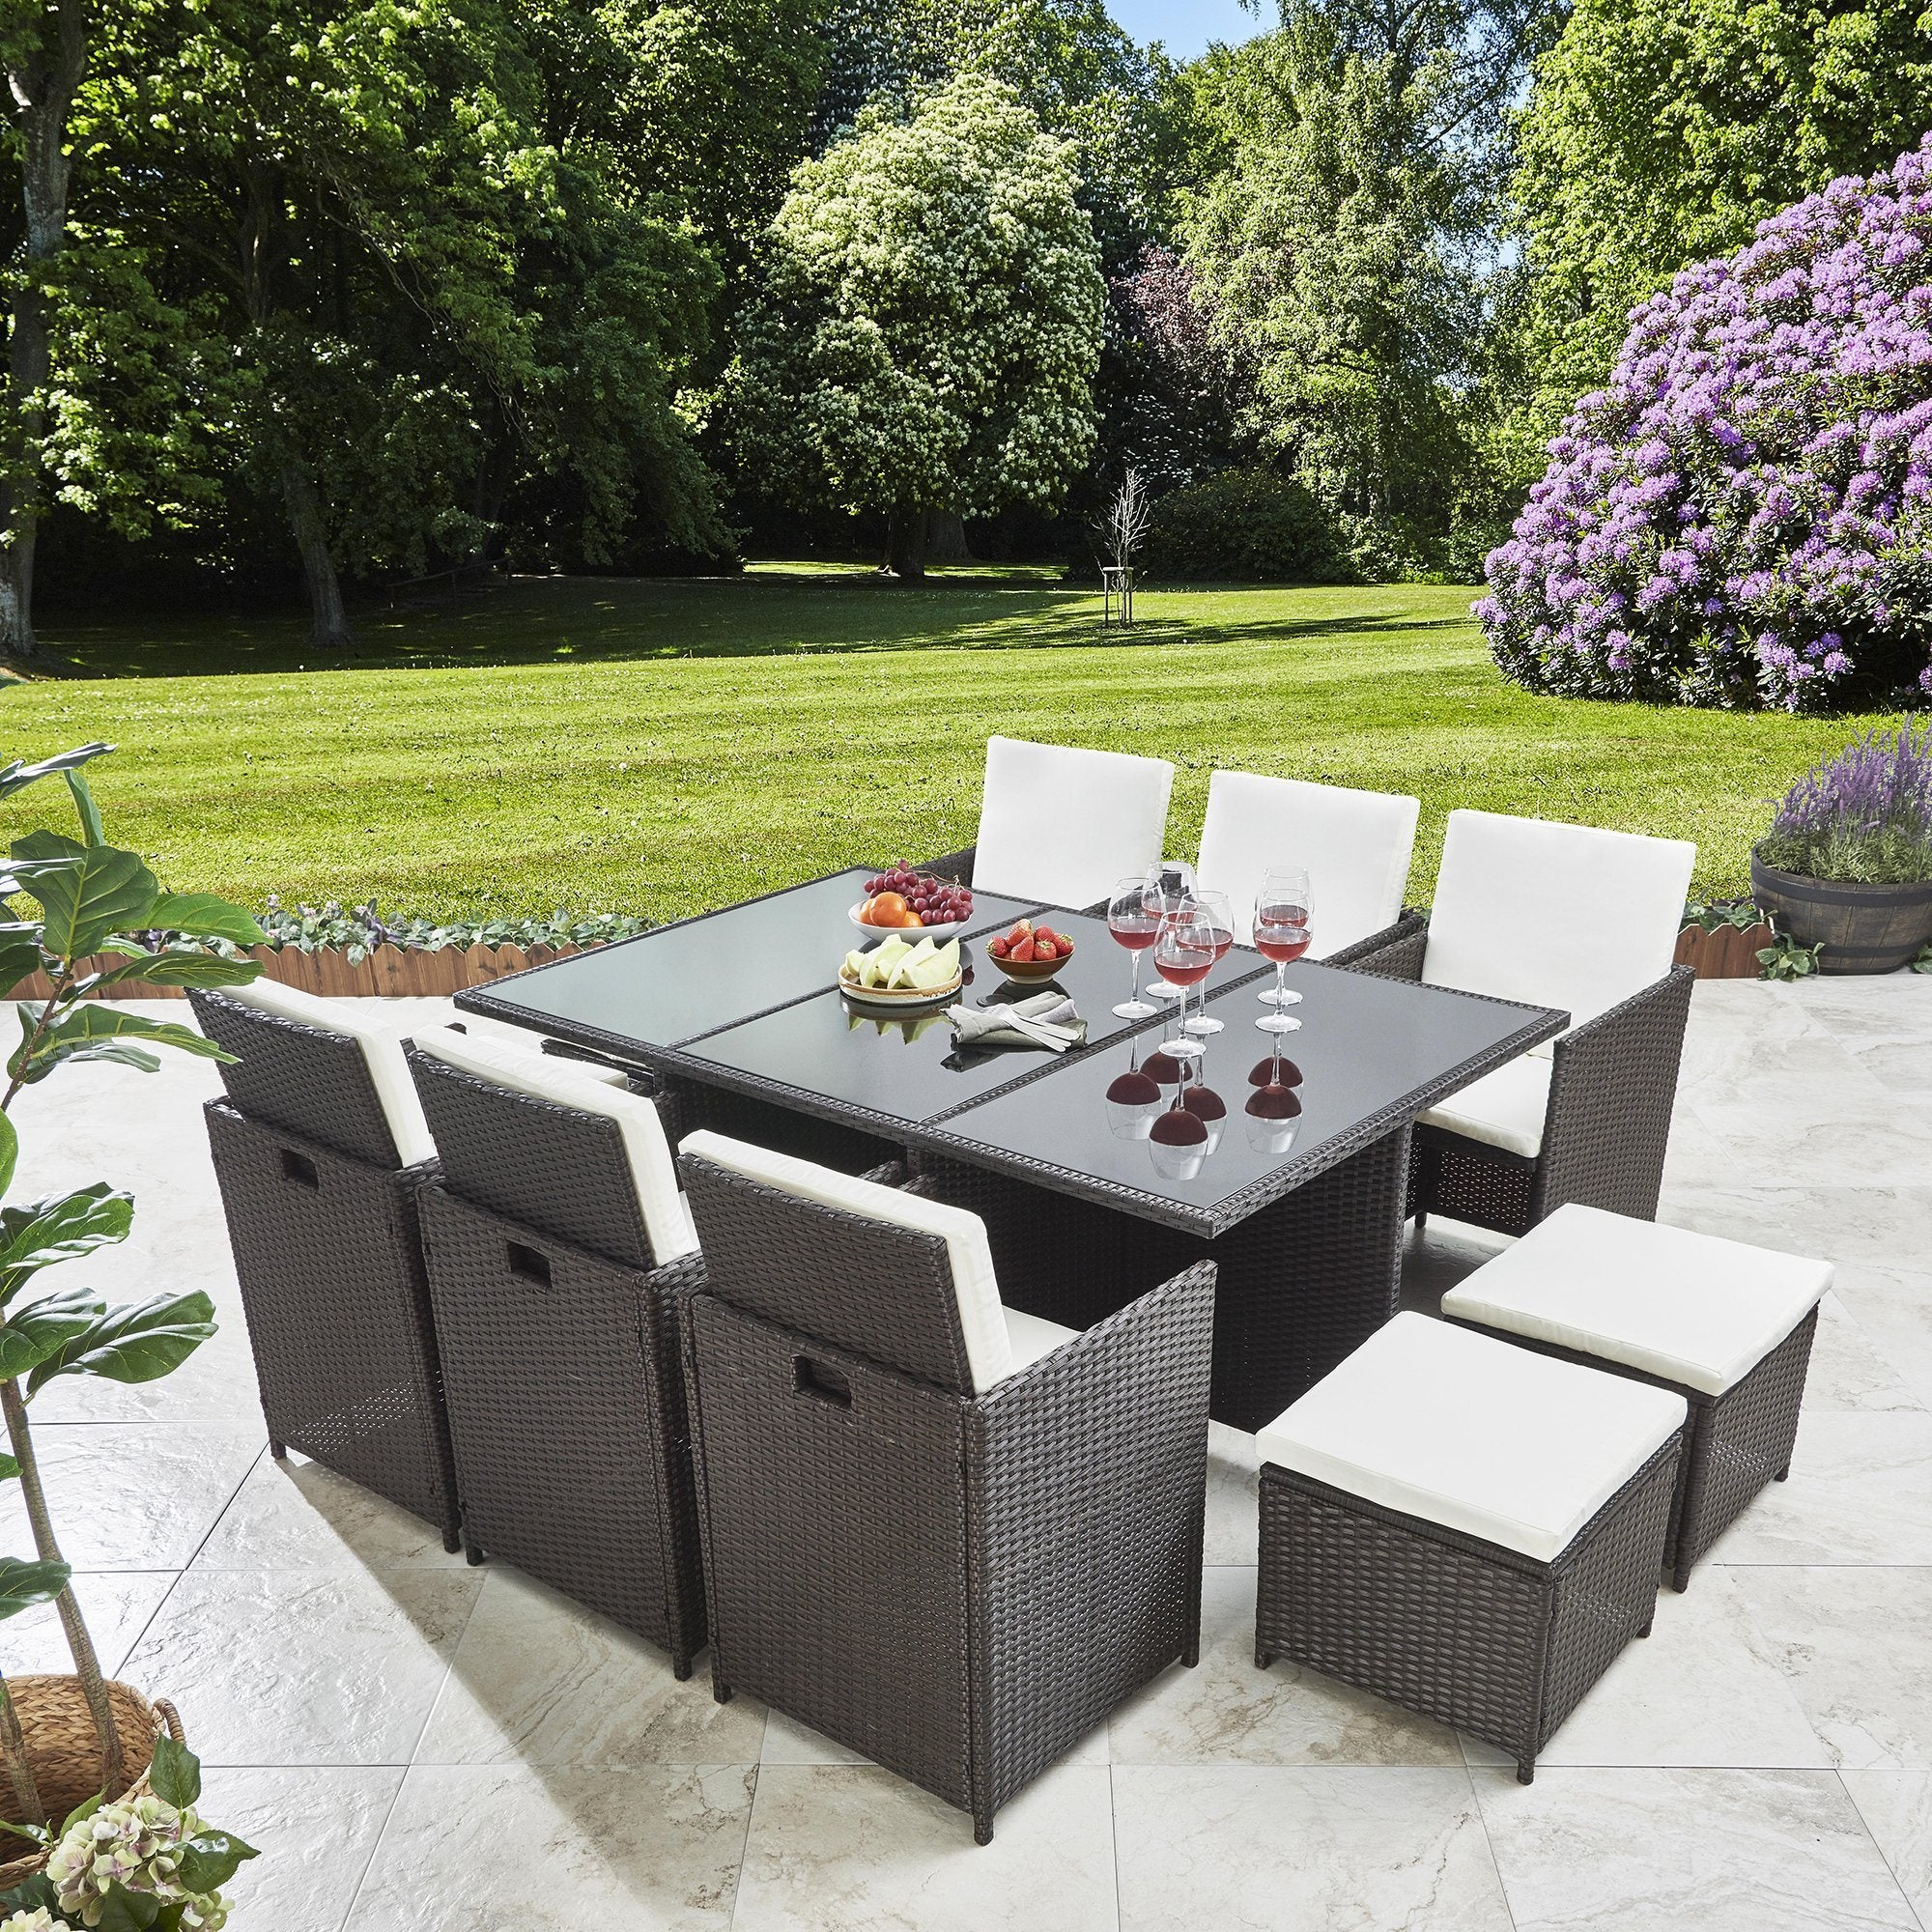 Garden Table And Chairs Set Cube: Rattan Cube Garden Furniture Set